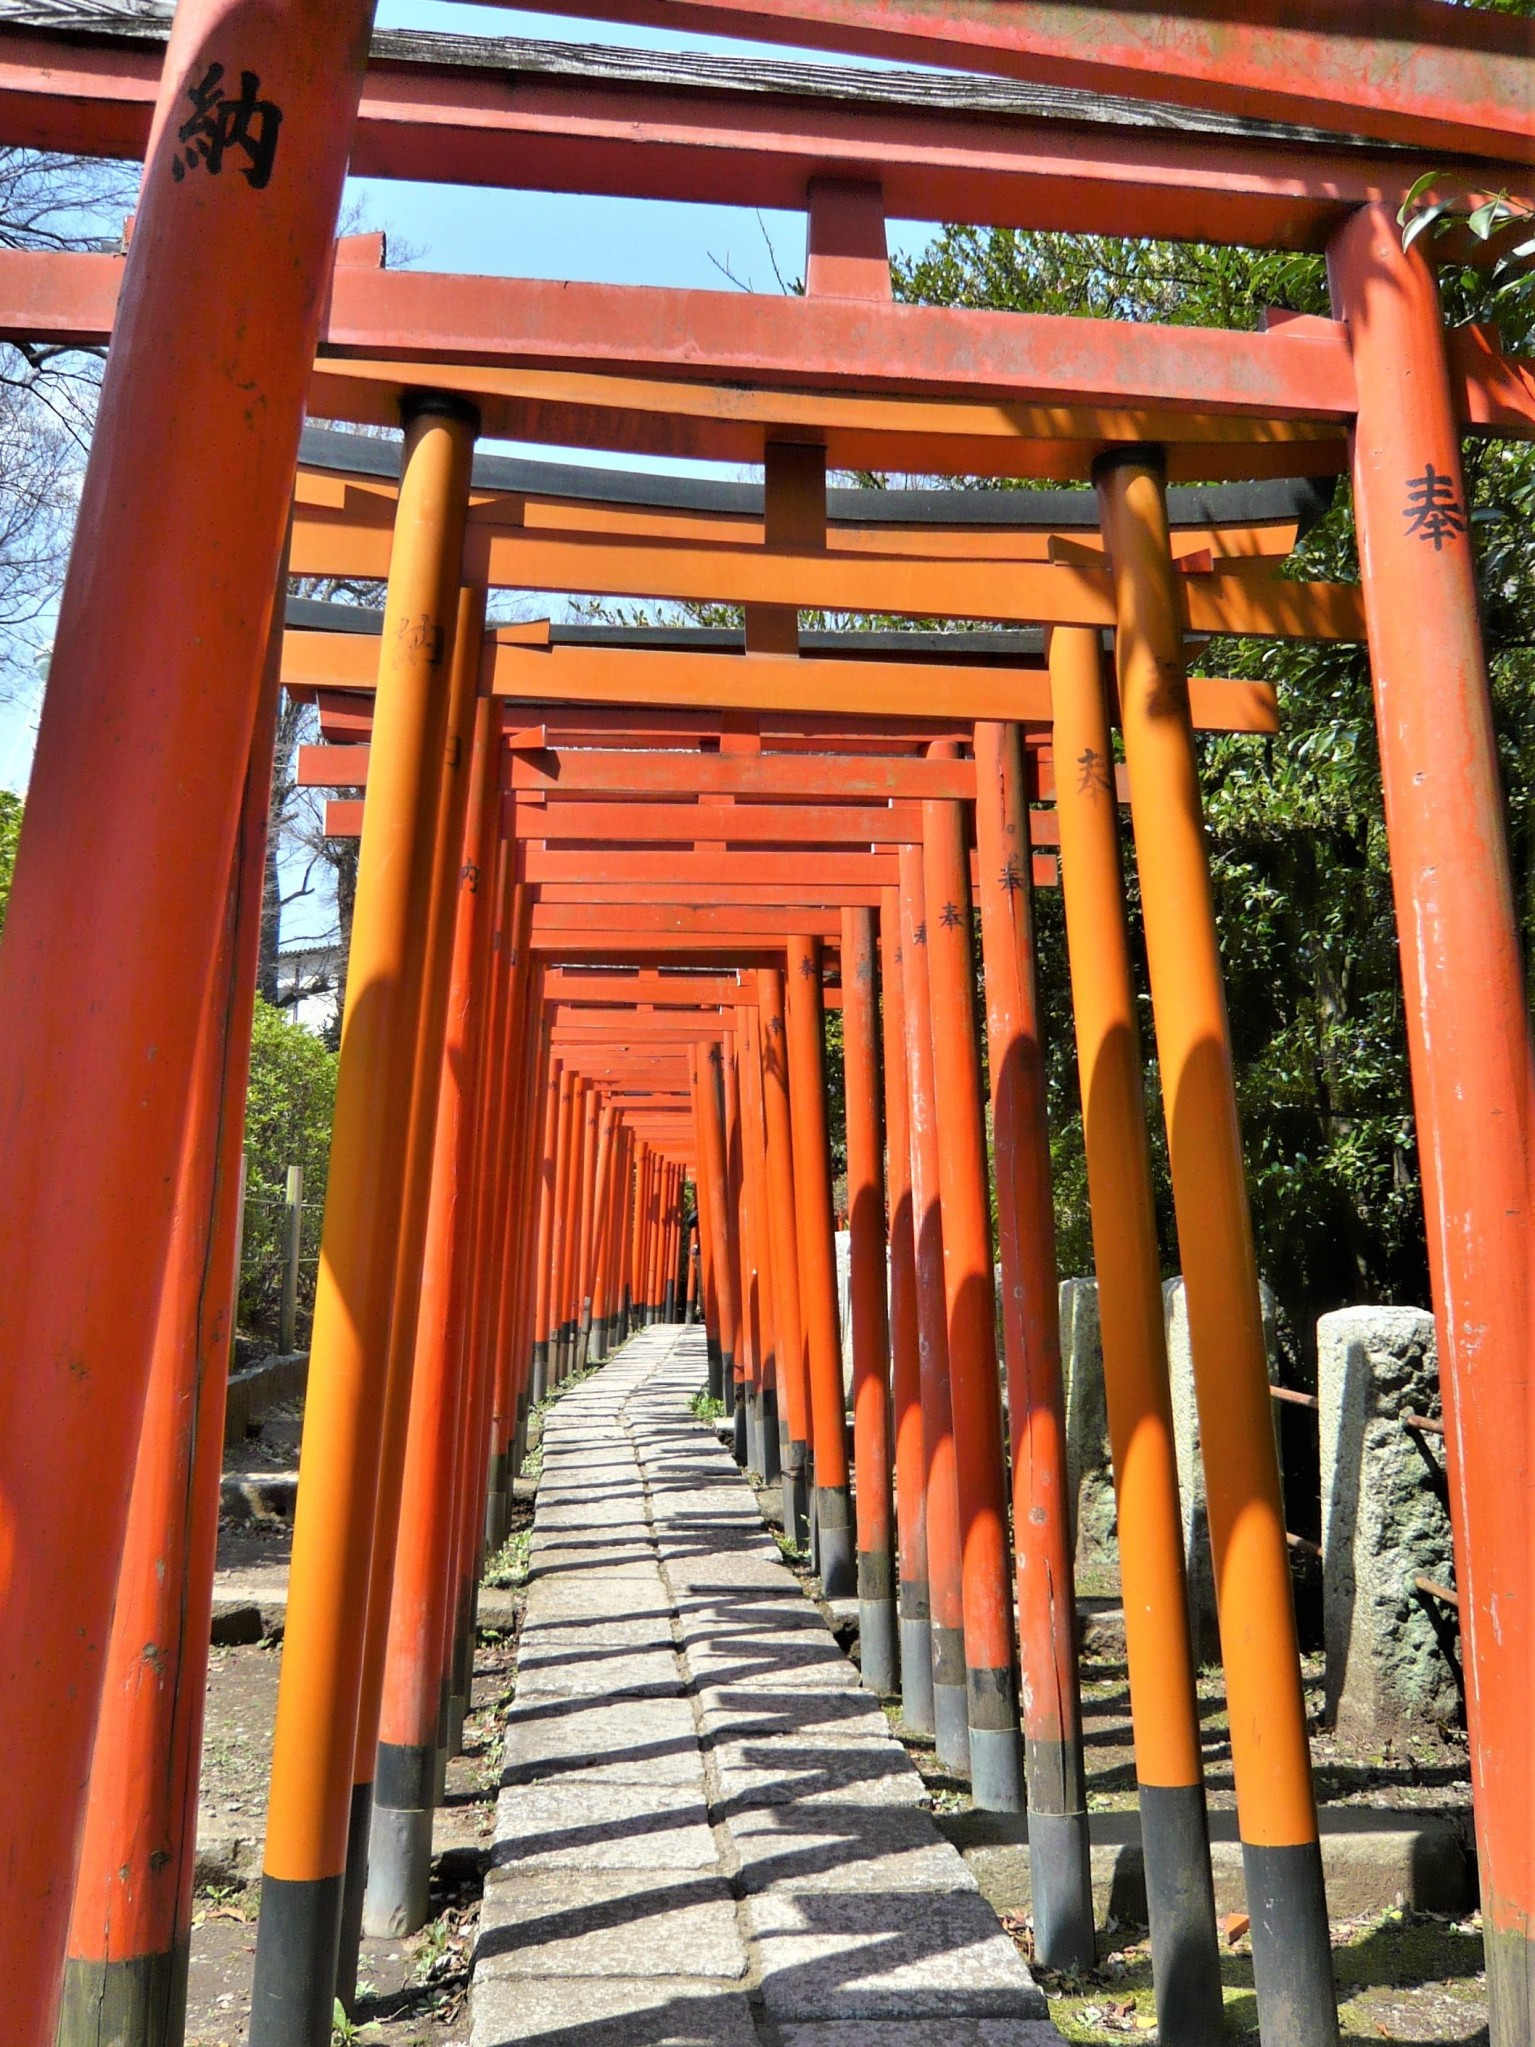 A path leading through a series of red gates at a shrine in Tokyo, Japan.